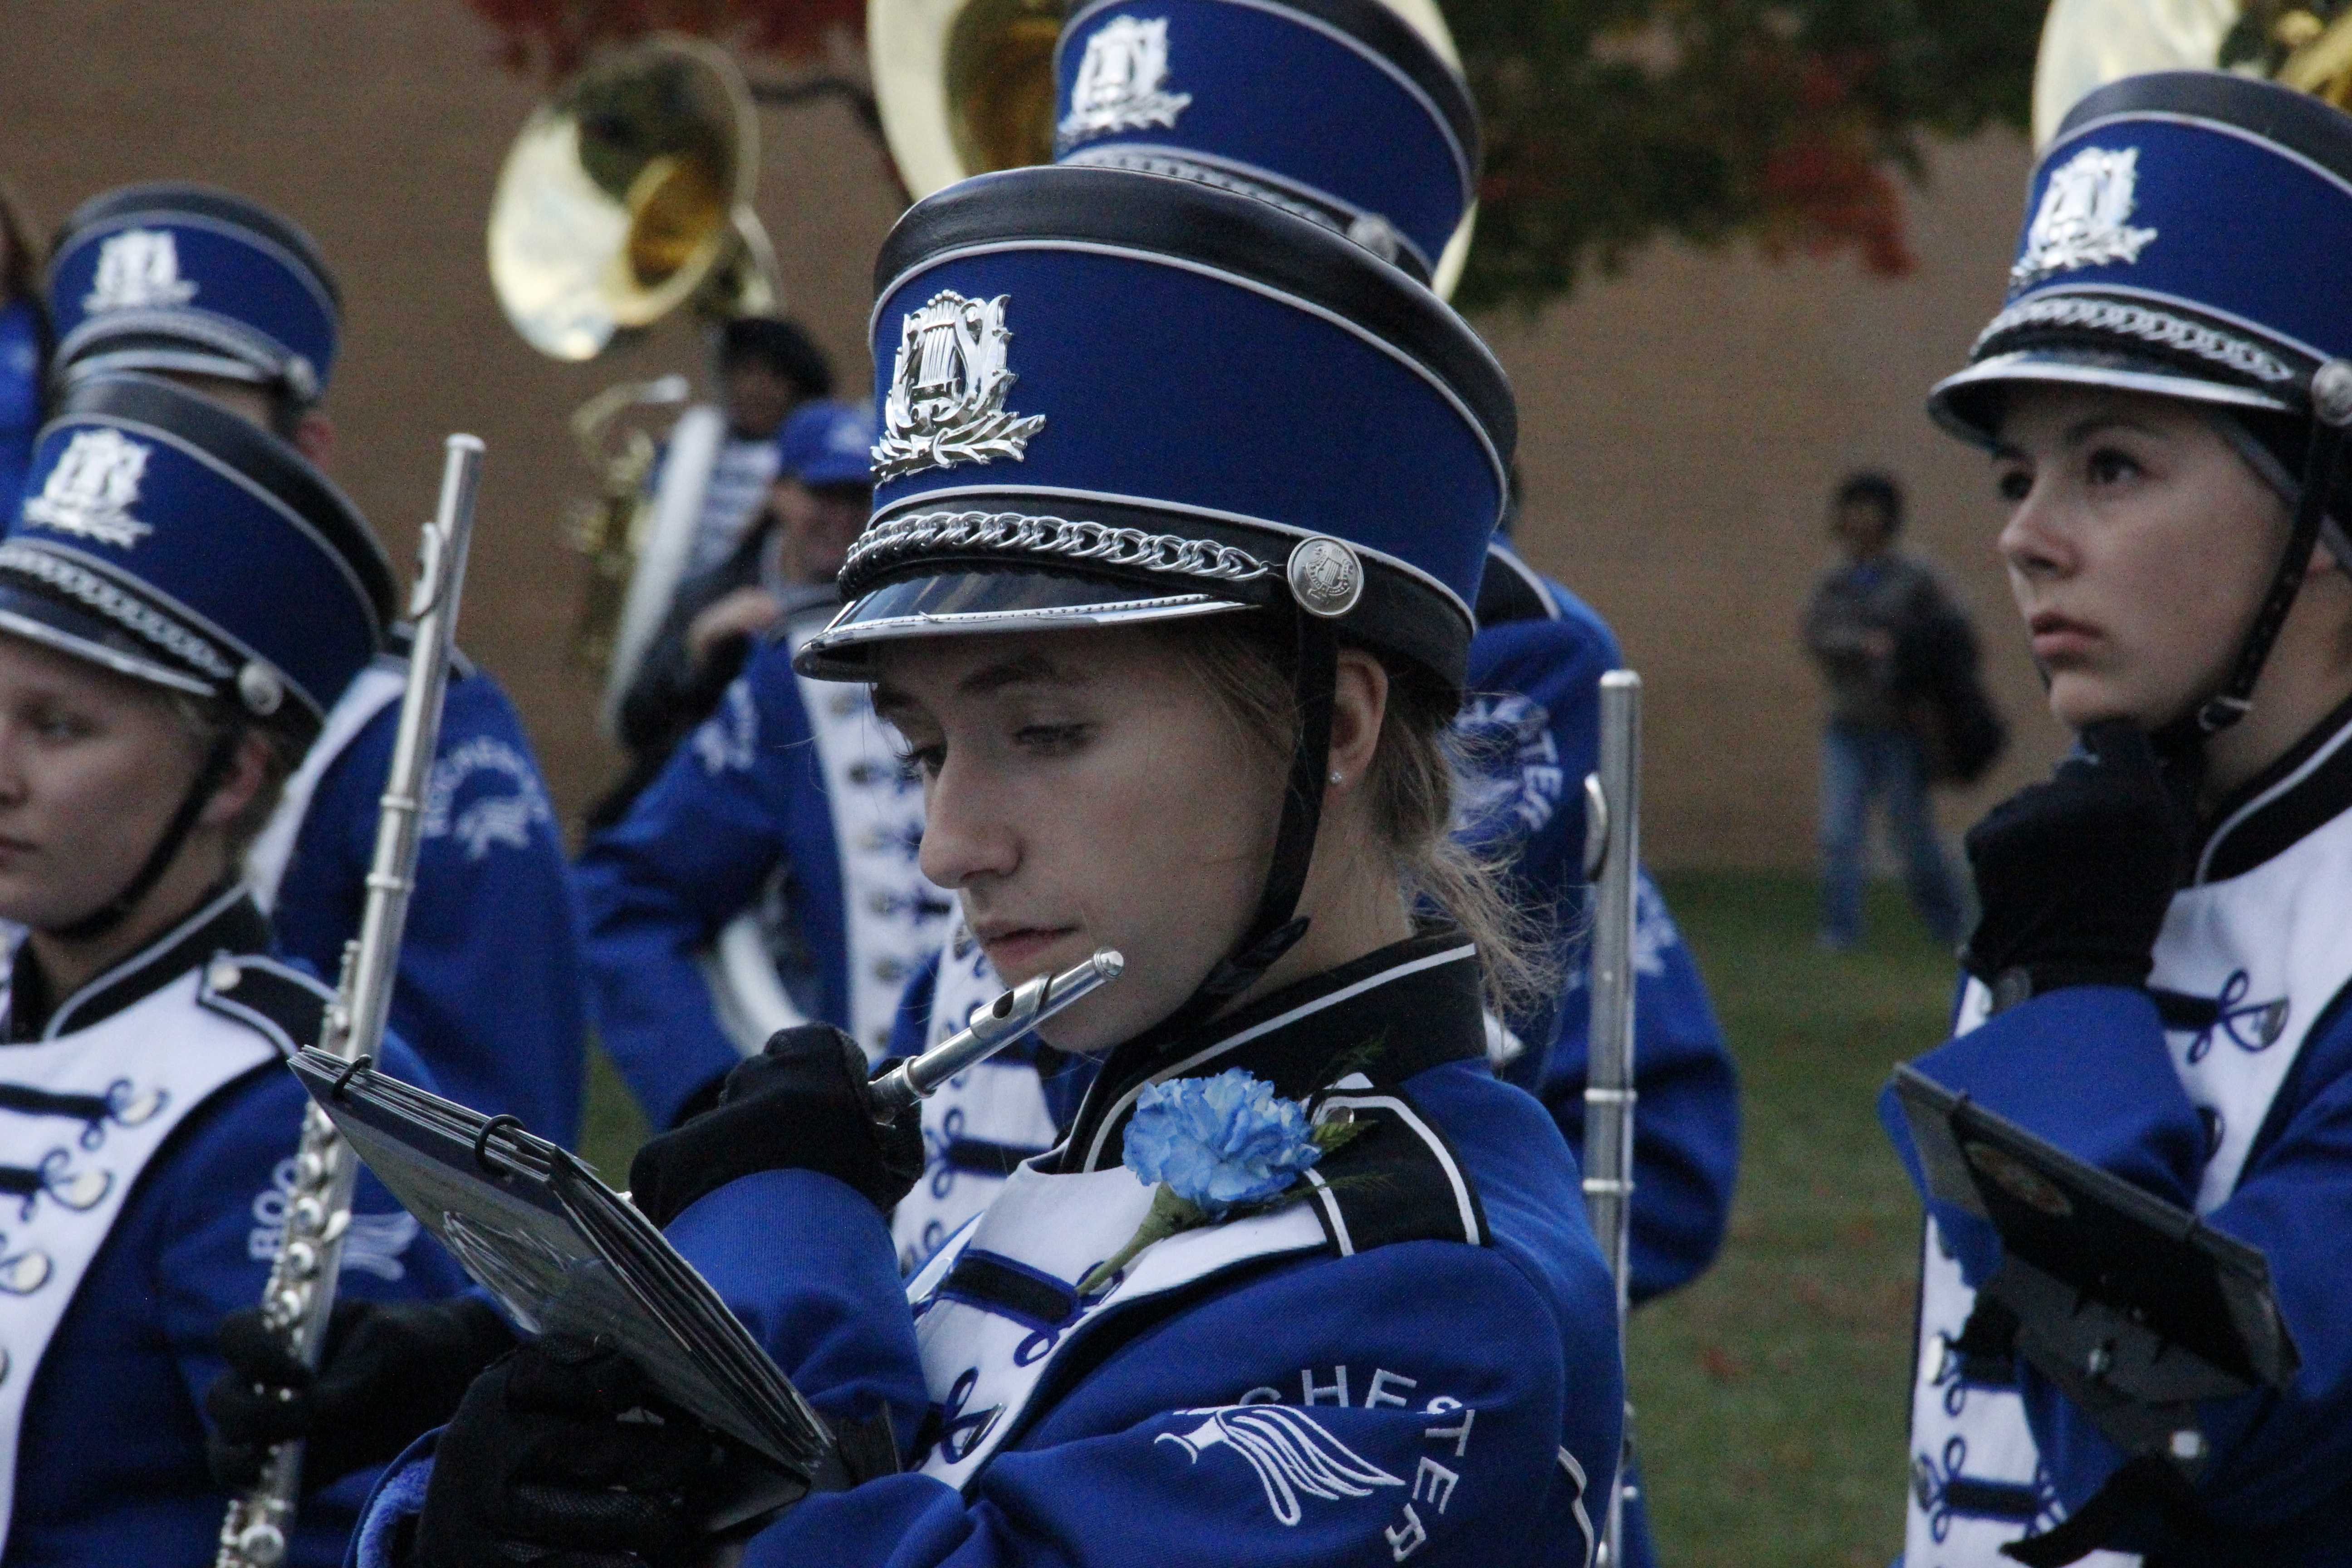 Senior Rachel Butala plays the flute in the Falcon Marching Band.